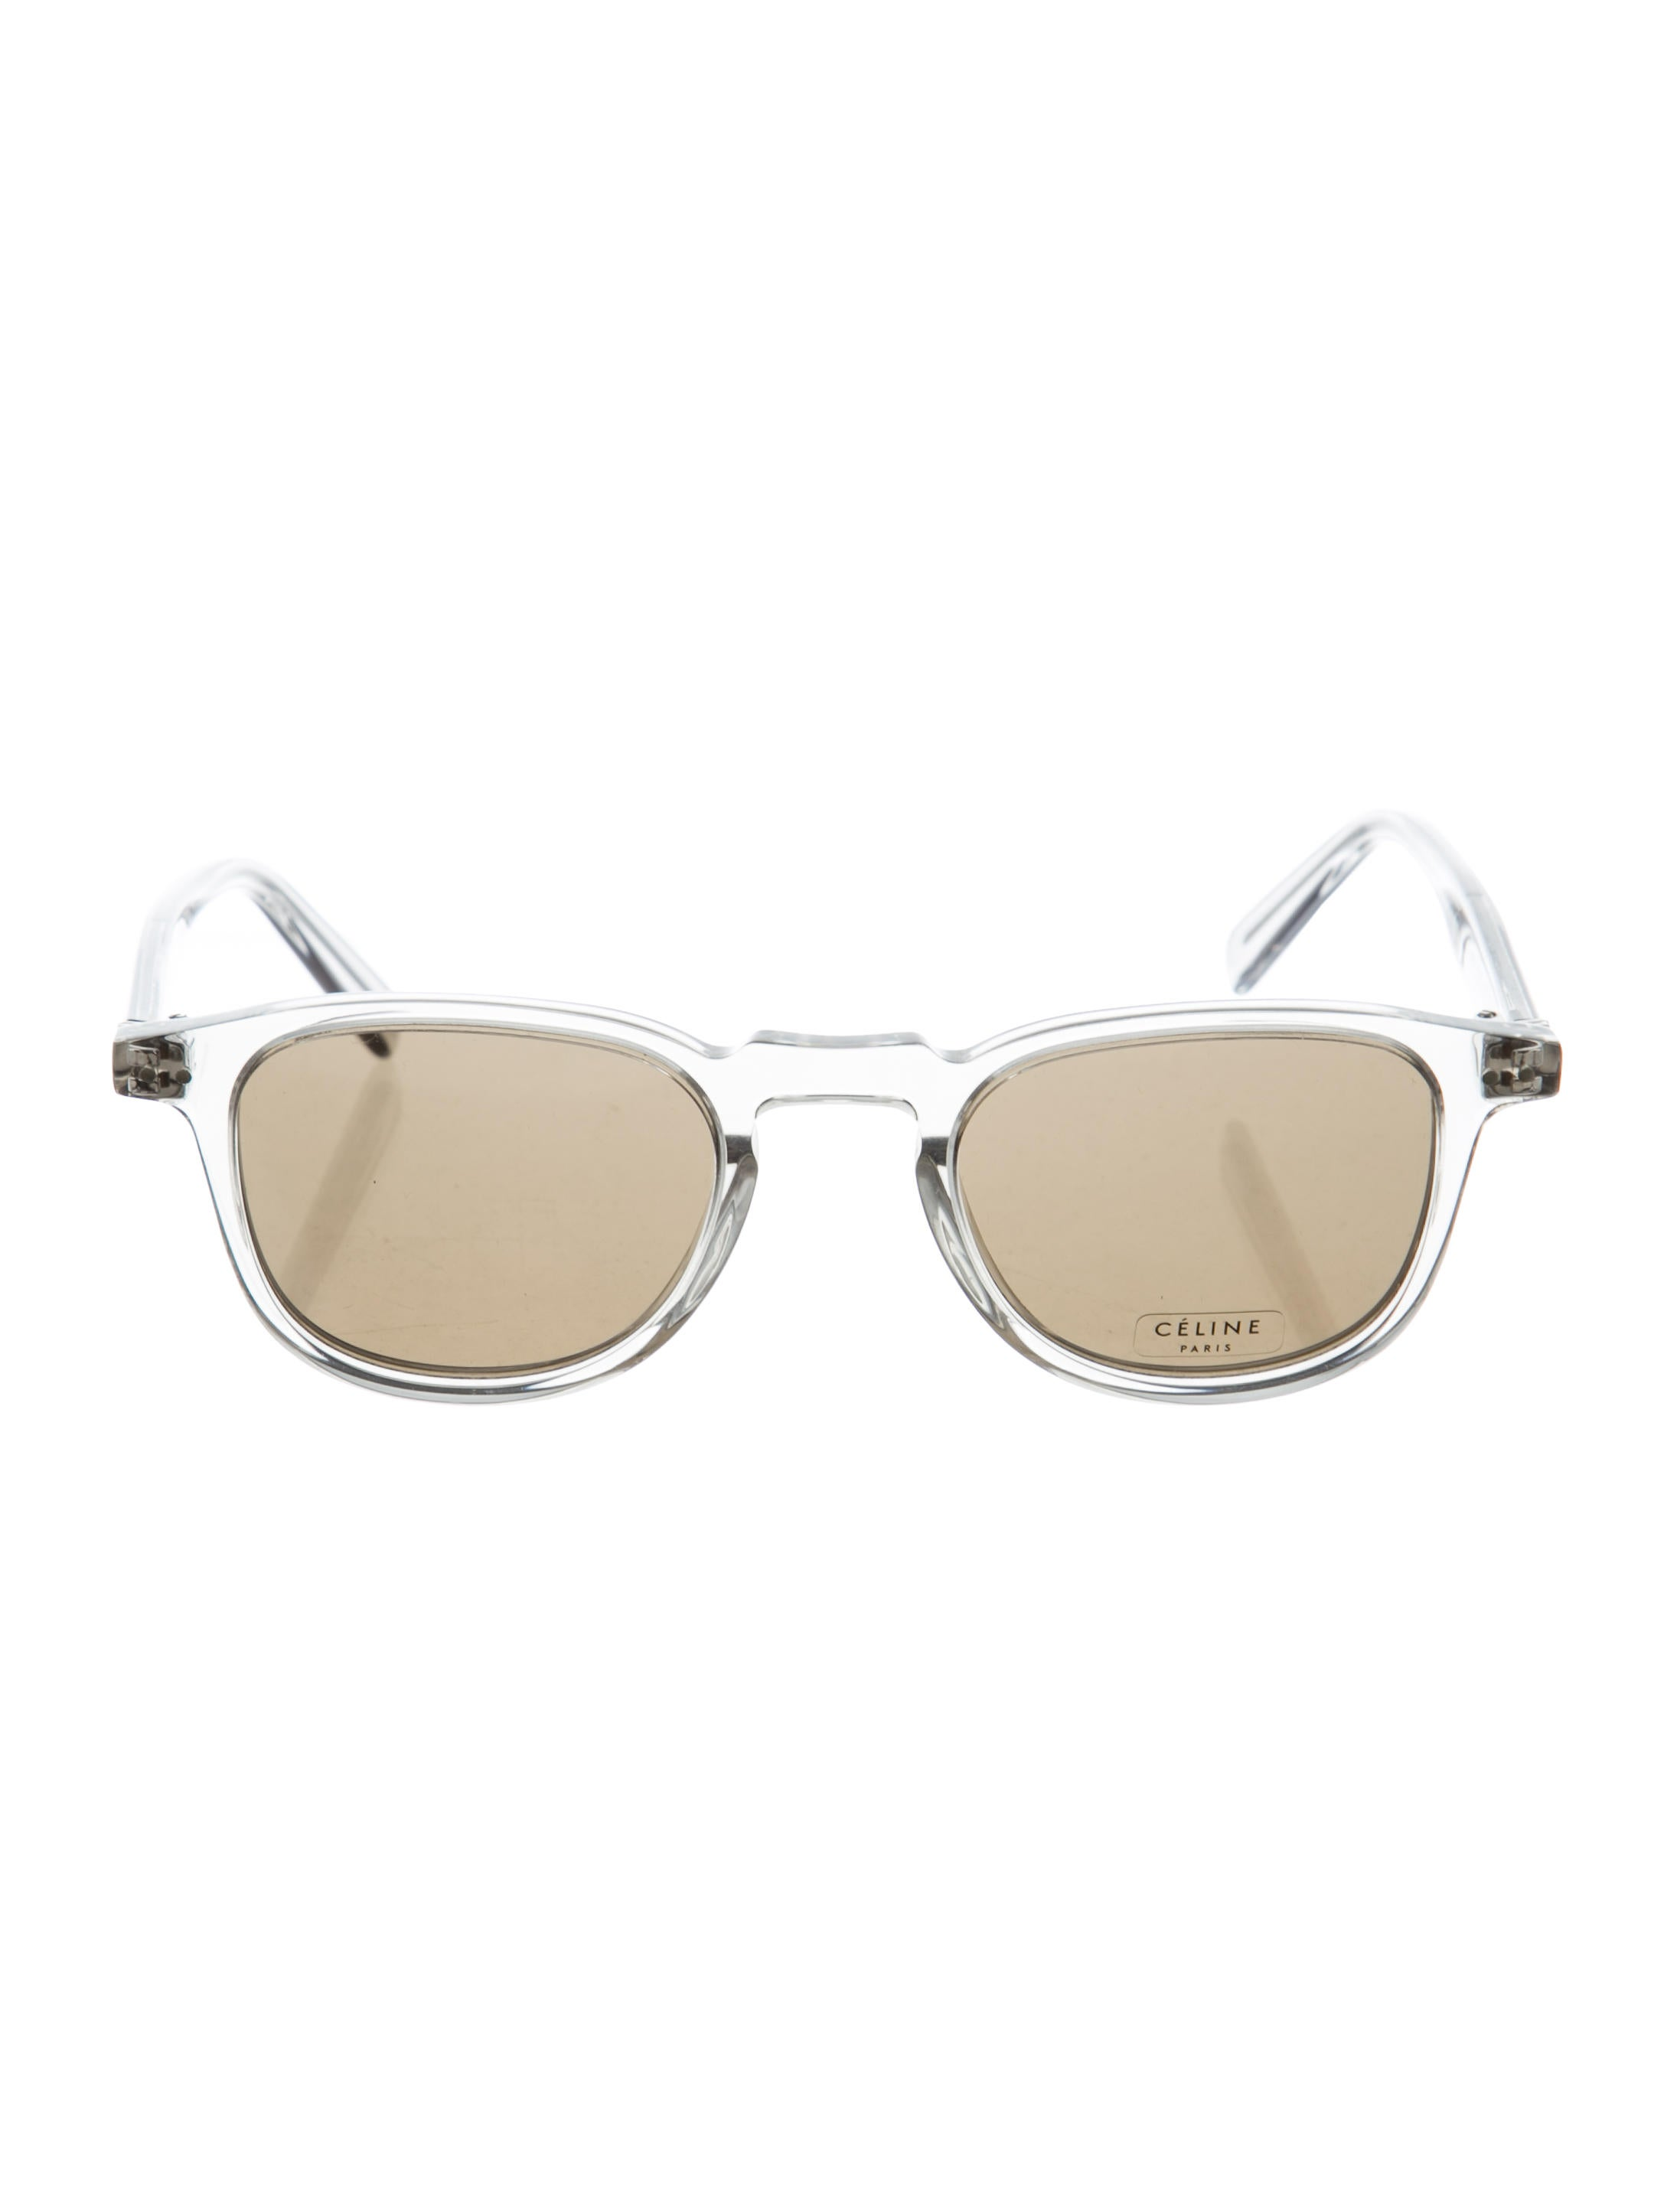 93035b7a9748e Céline Tinted Clubmaster Sunglasses w  Tags - Accessories - CEL64801 ...